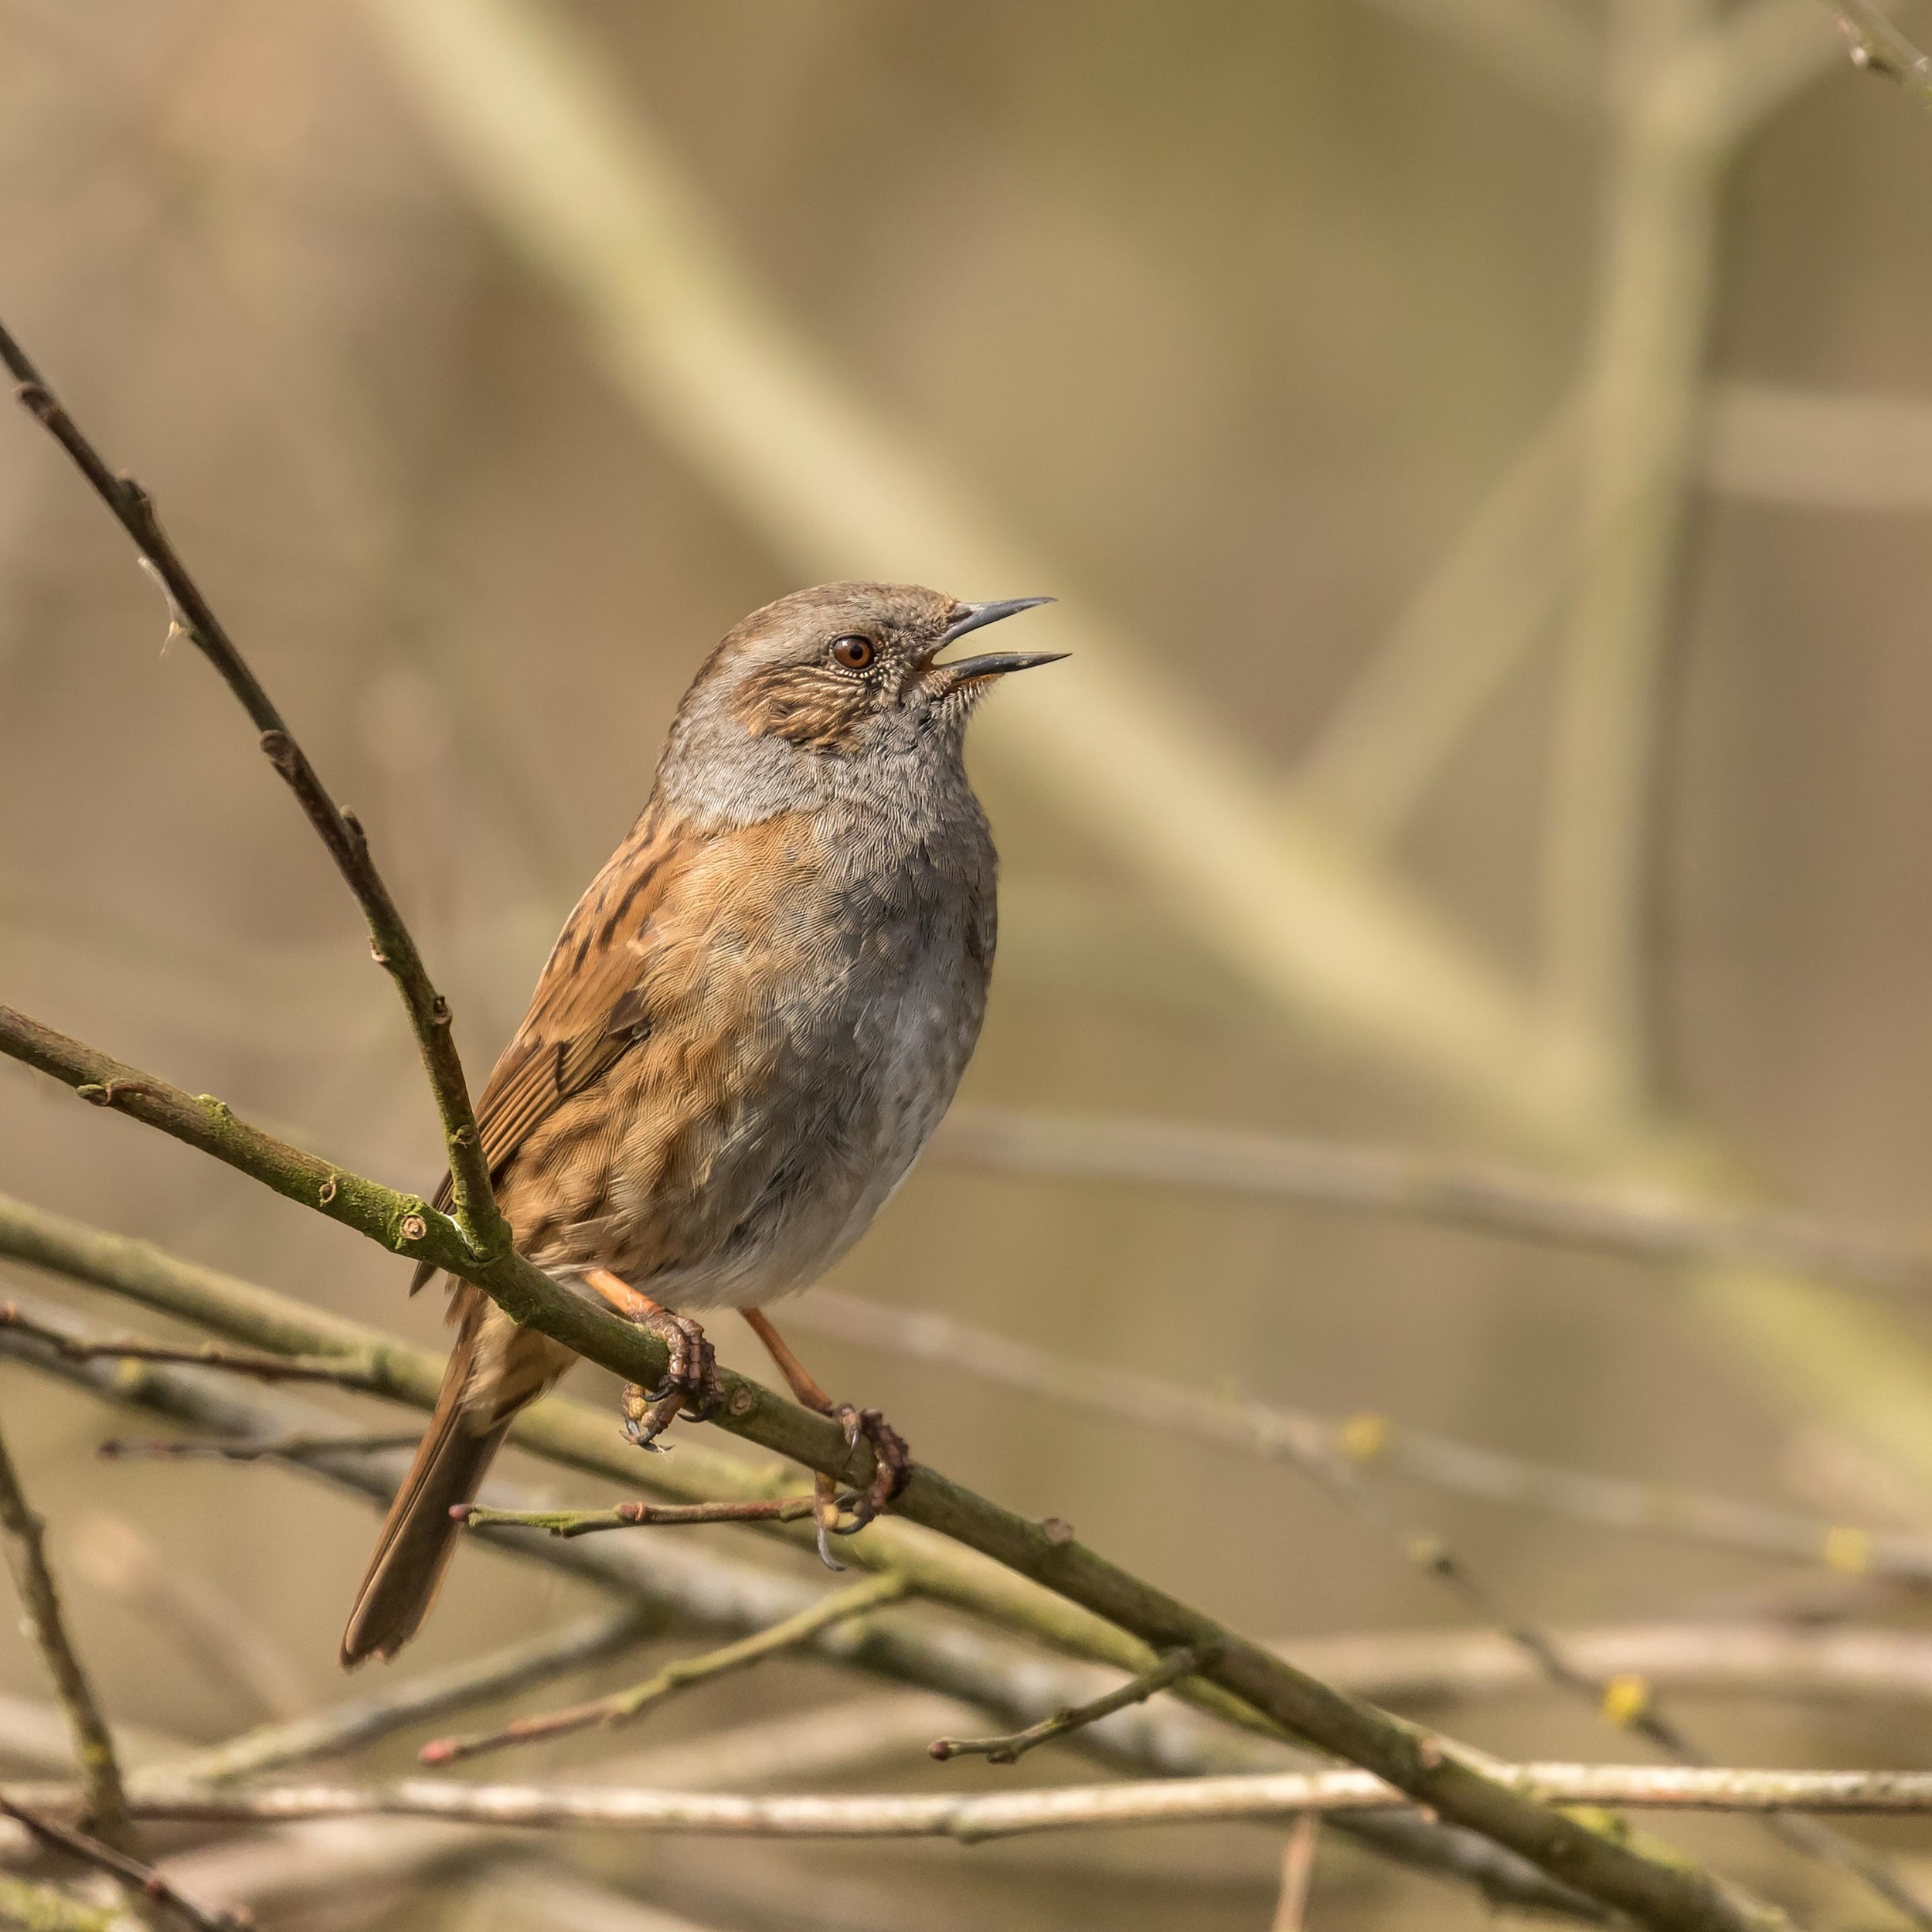 Male Dunnock in full song